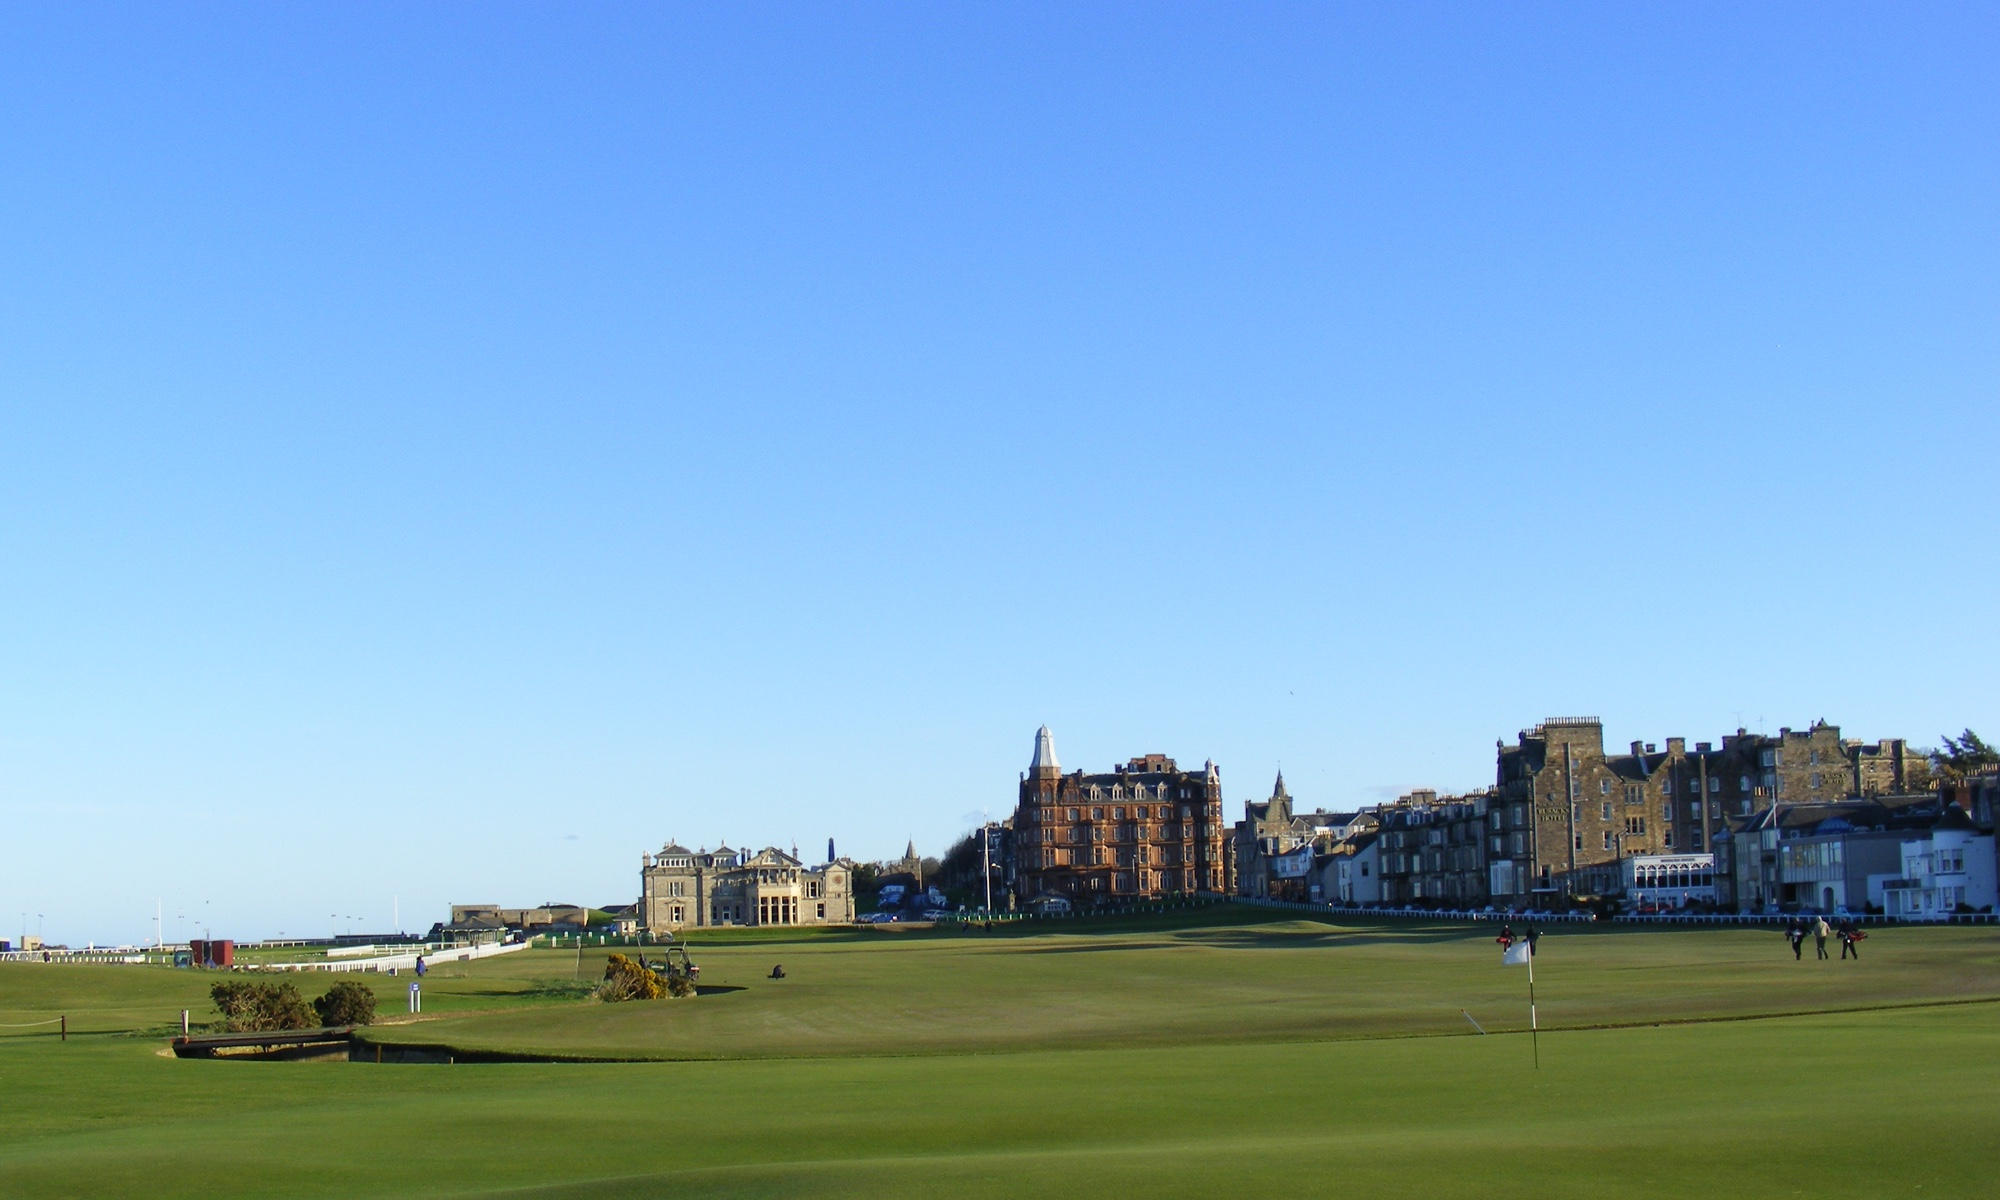 View over a golf green towards St. Andrews in Scotland.